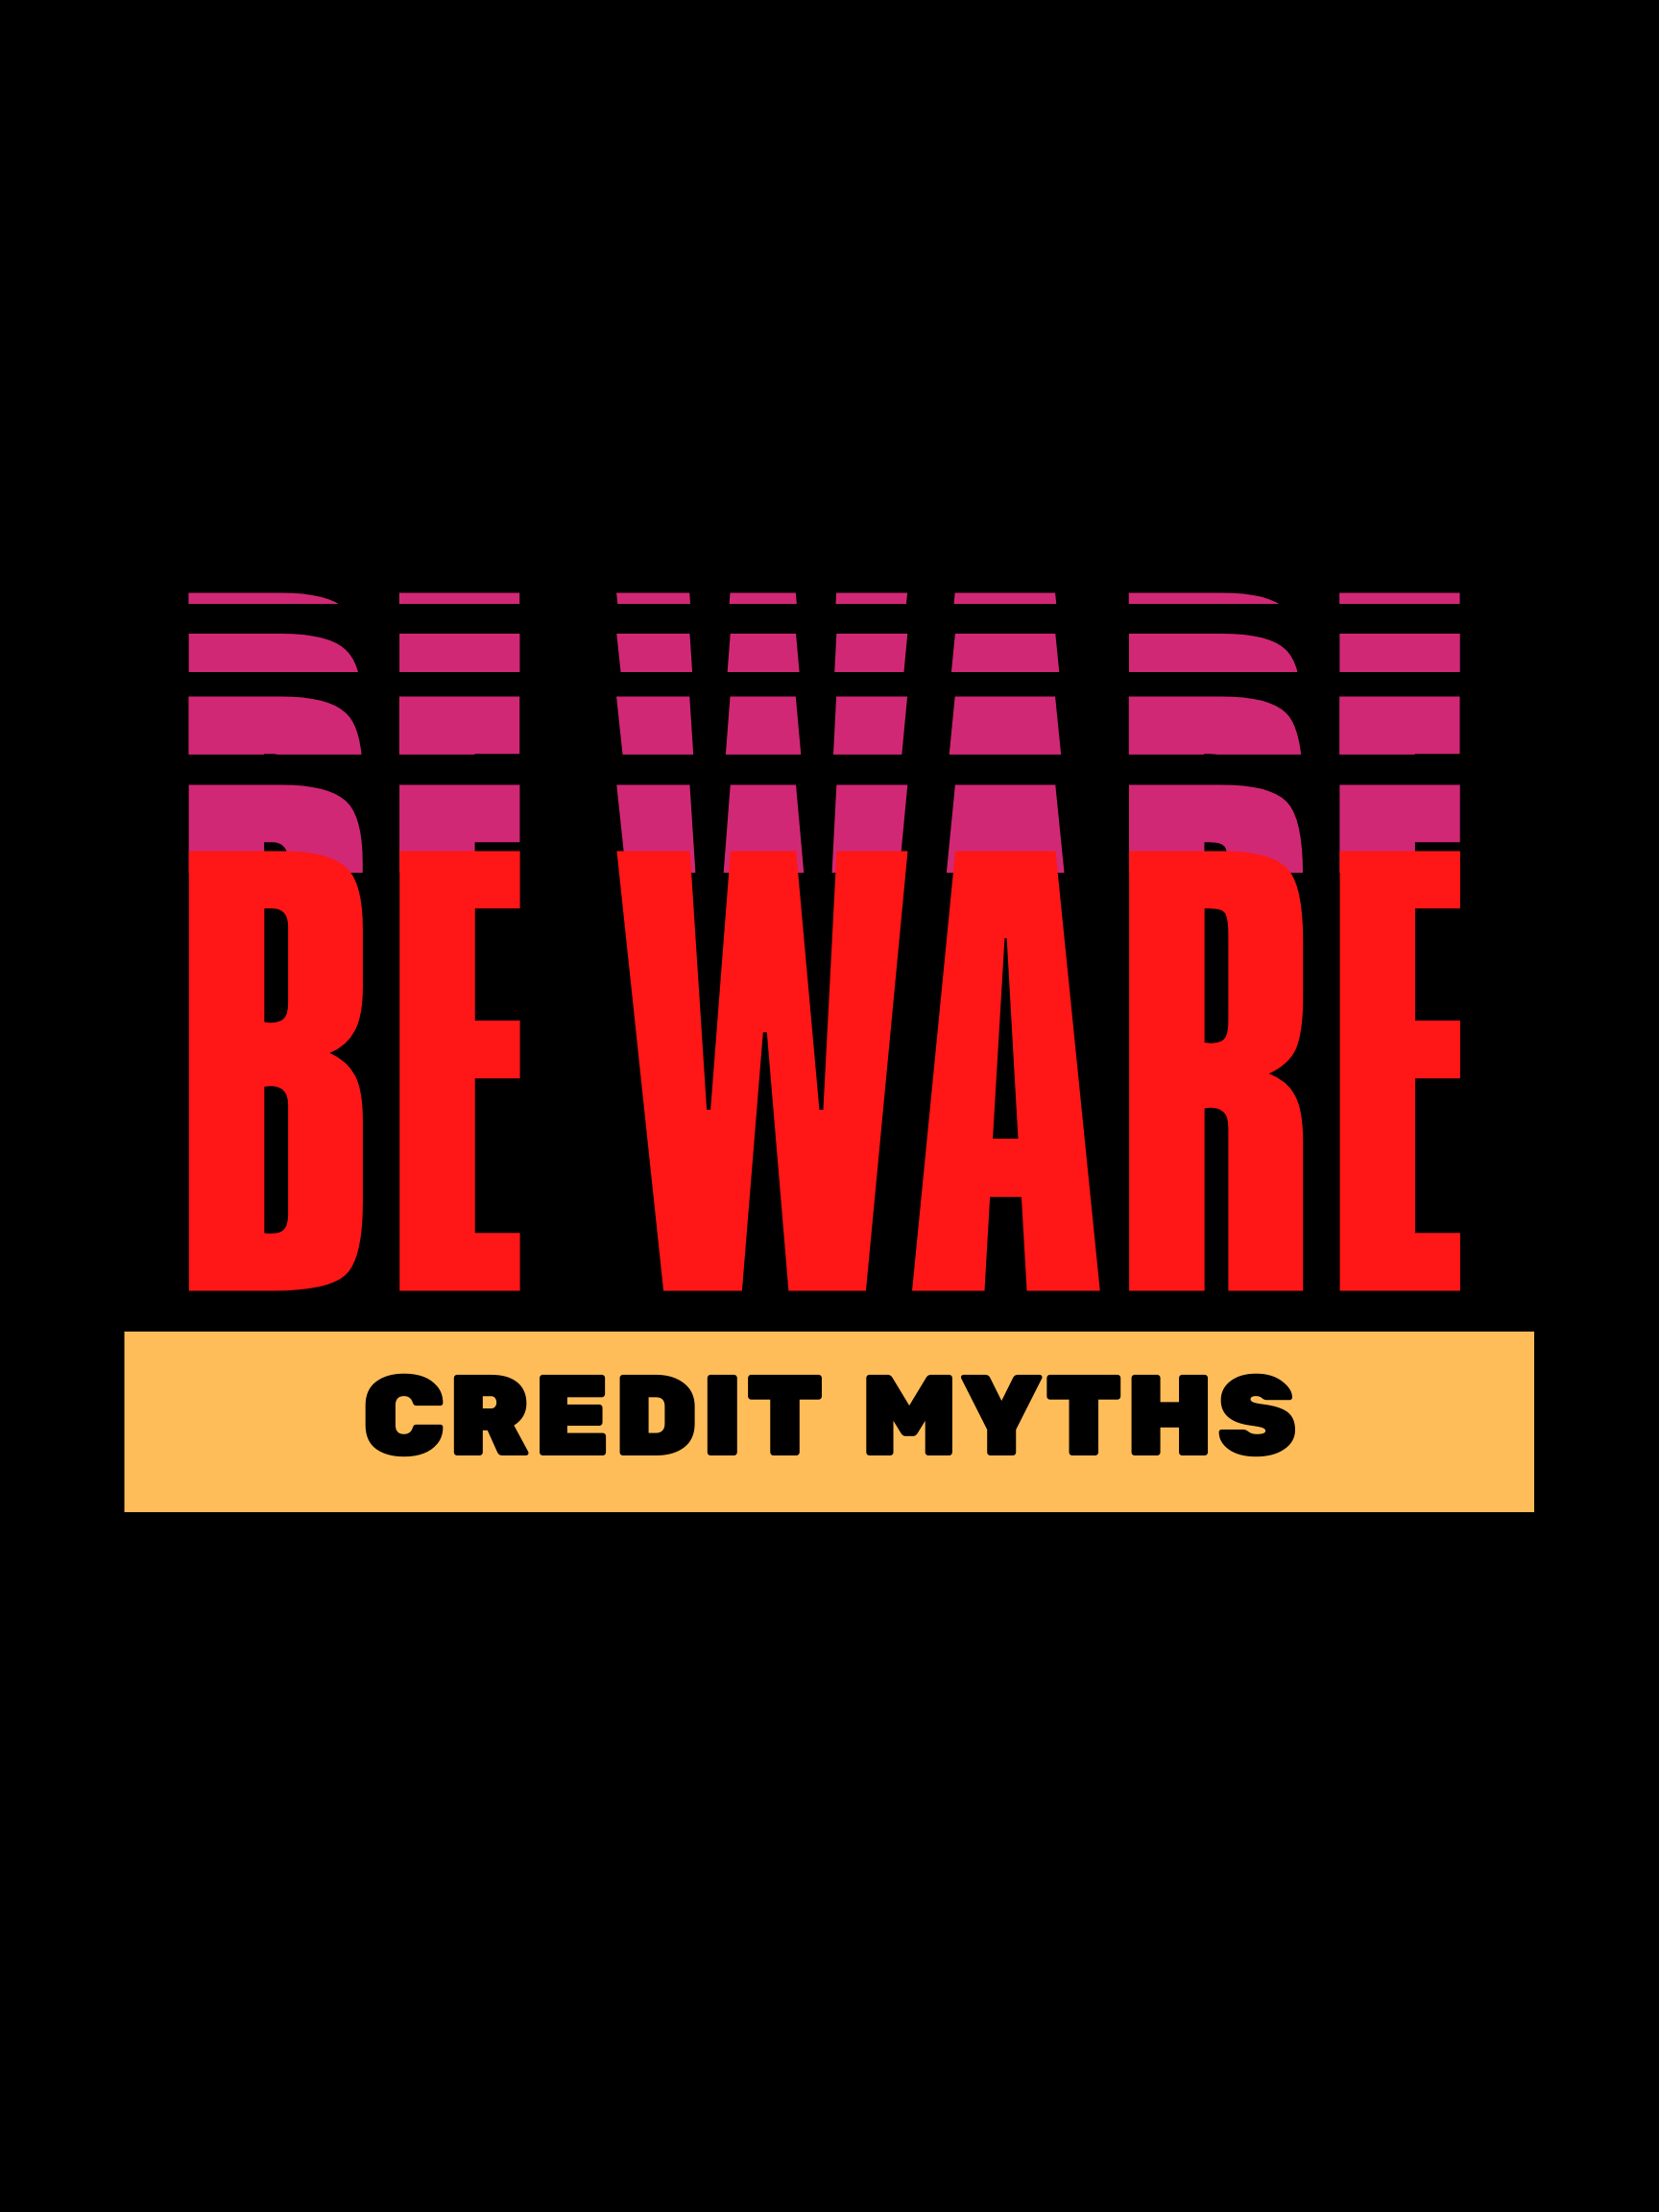 Beware of The Credit Myths